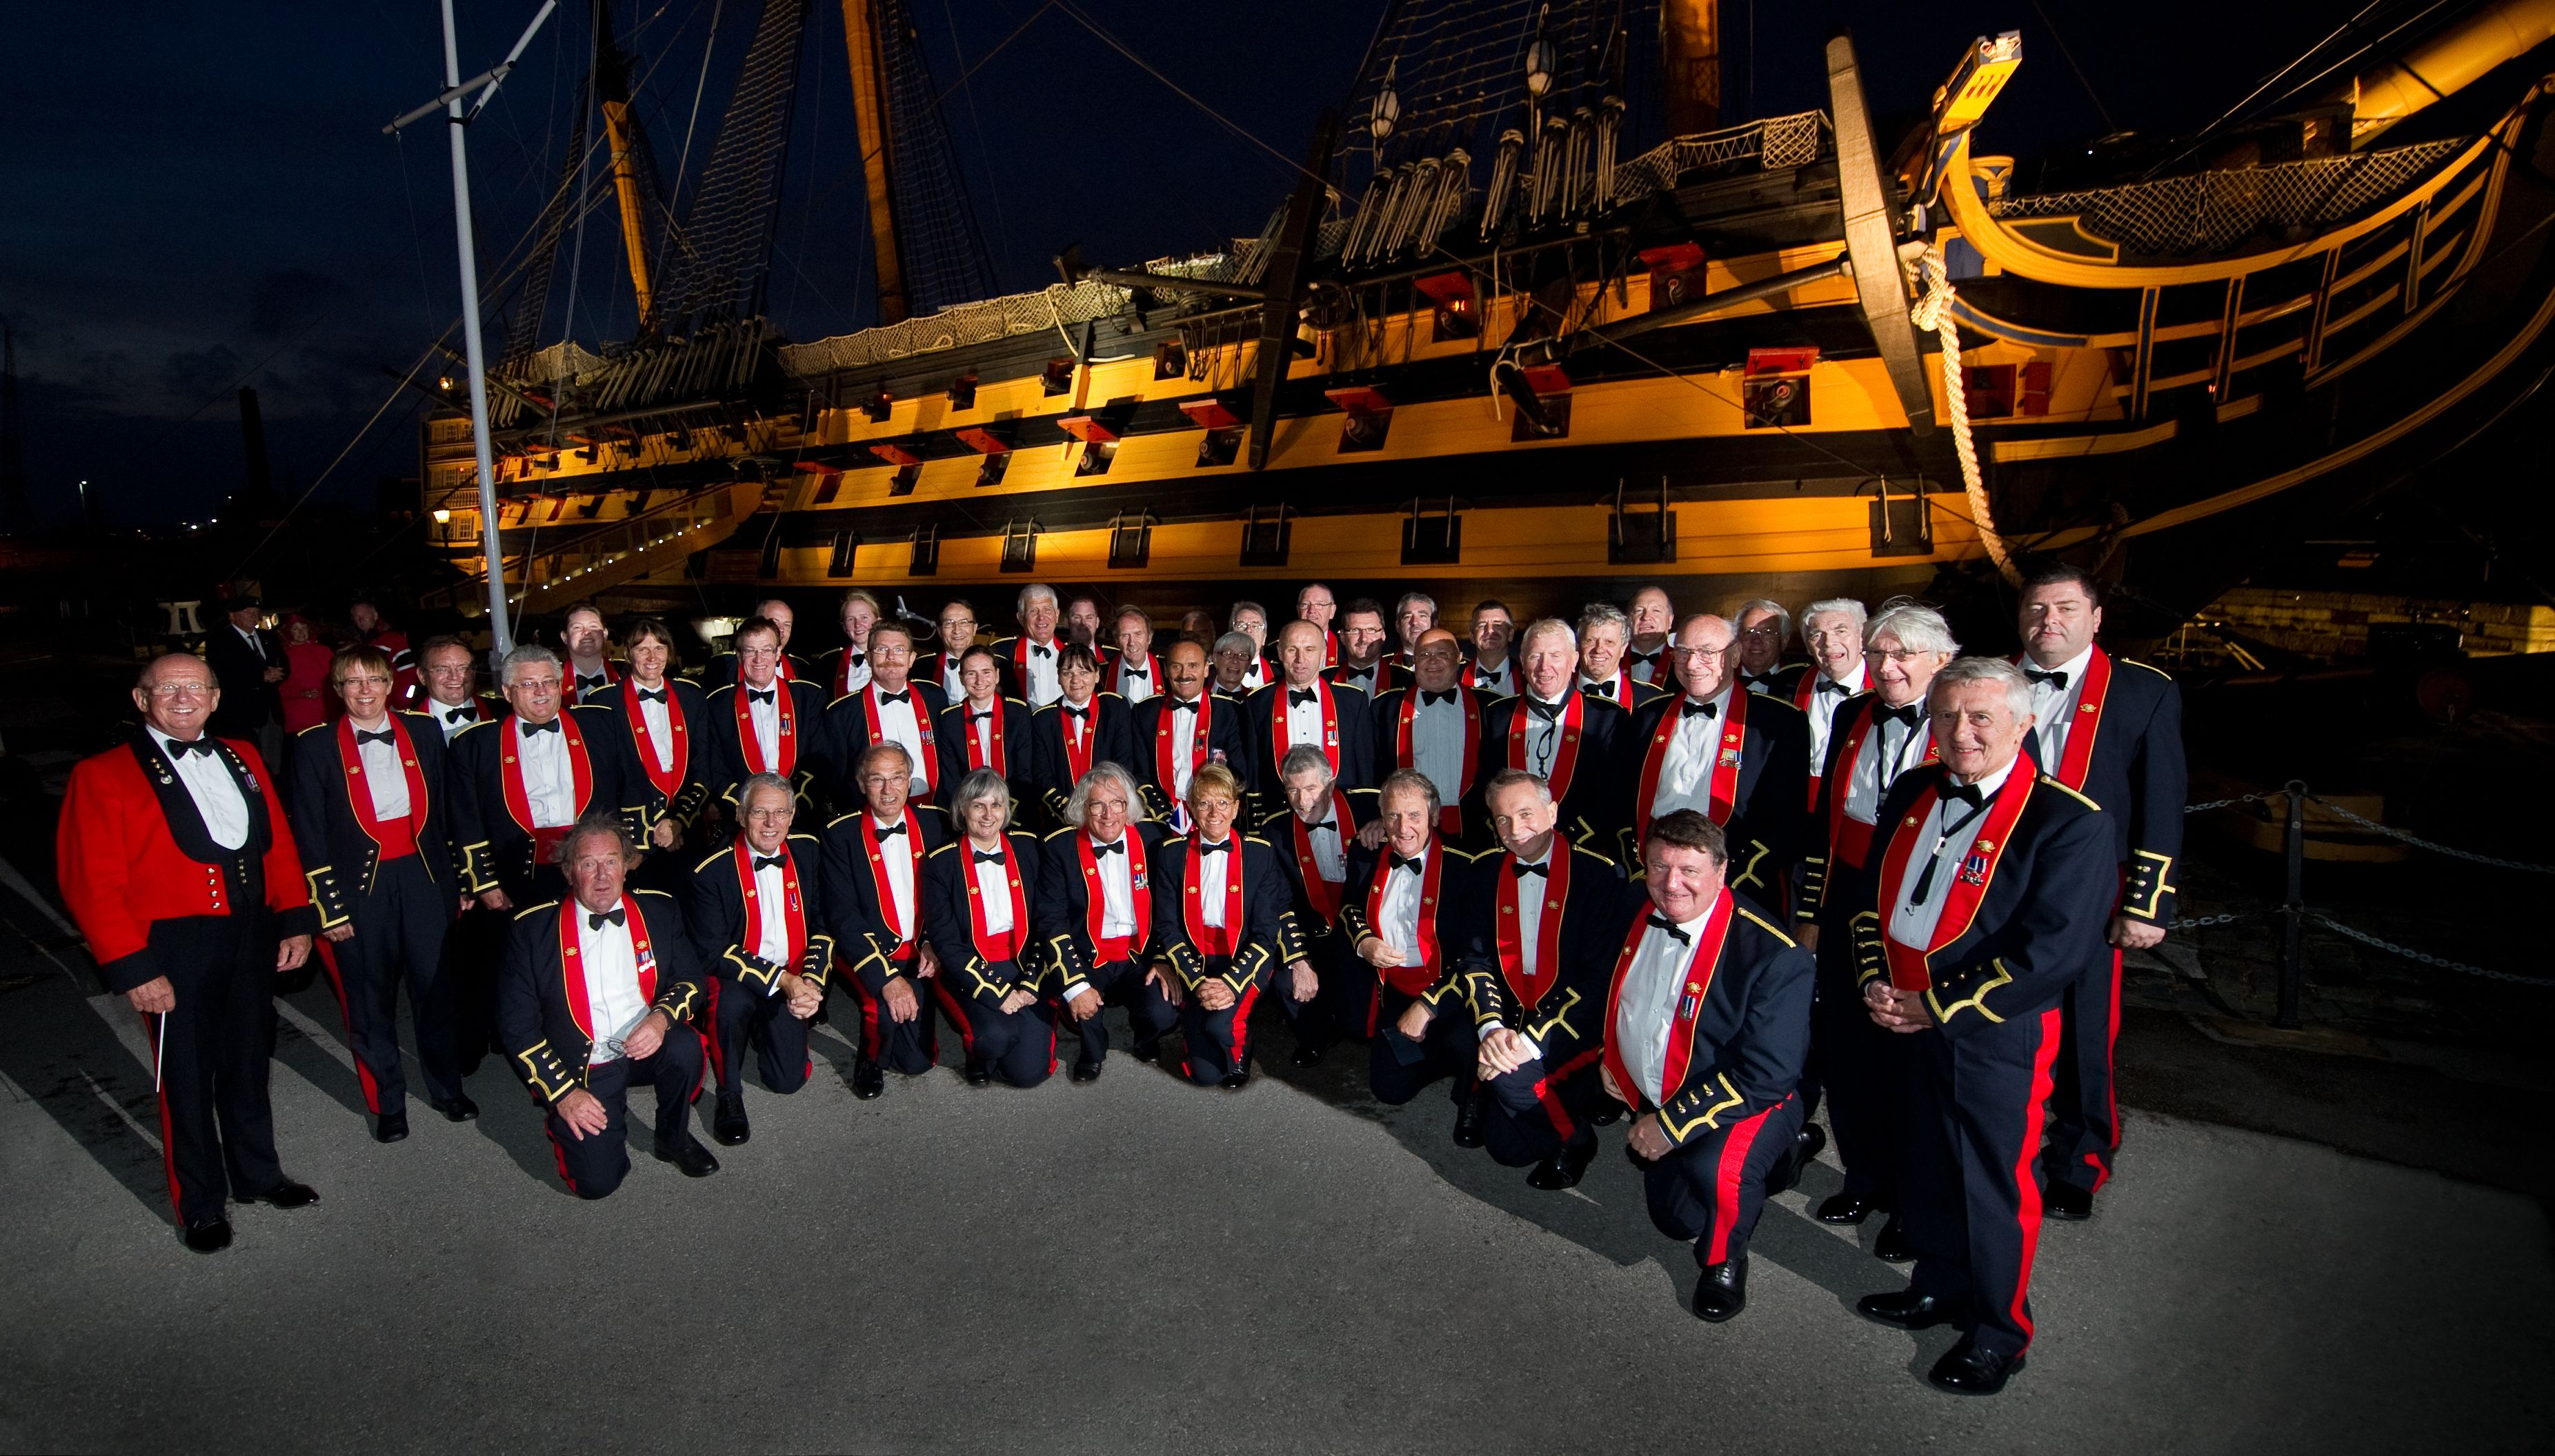 Dockyard at Dusk exclusive concert celebrating HMS Victory's 250th anniversary